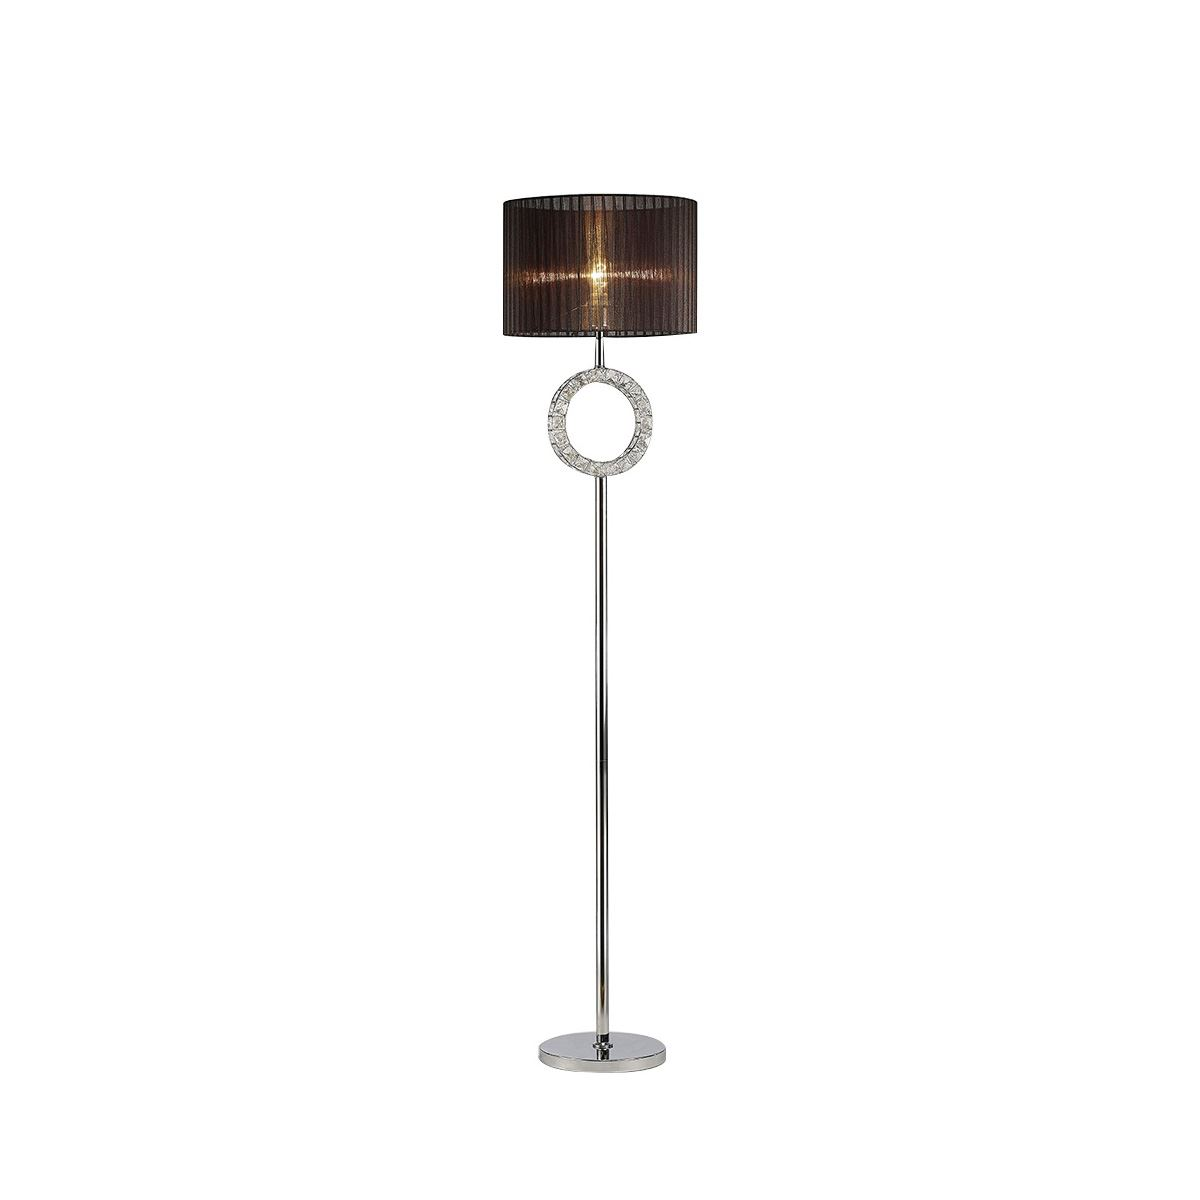 Diyas Florence Round Floor Lamp With Black Shade 1 Light Polished Chrome/Crystal